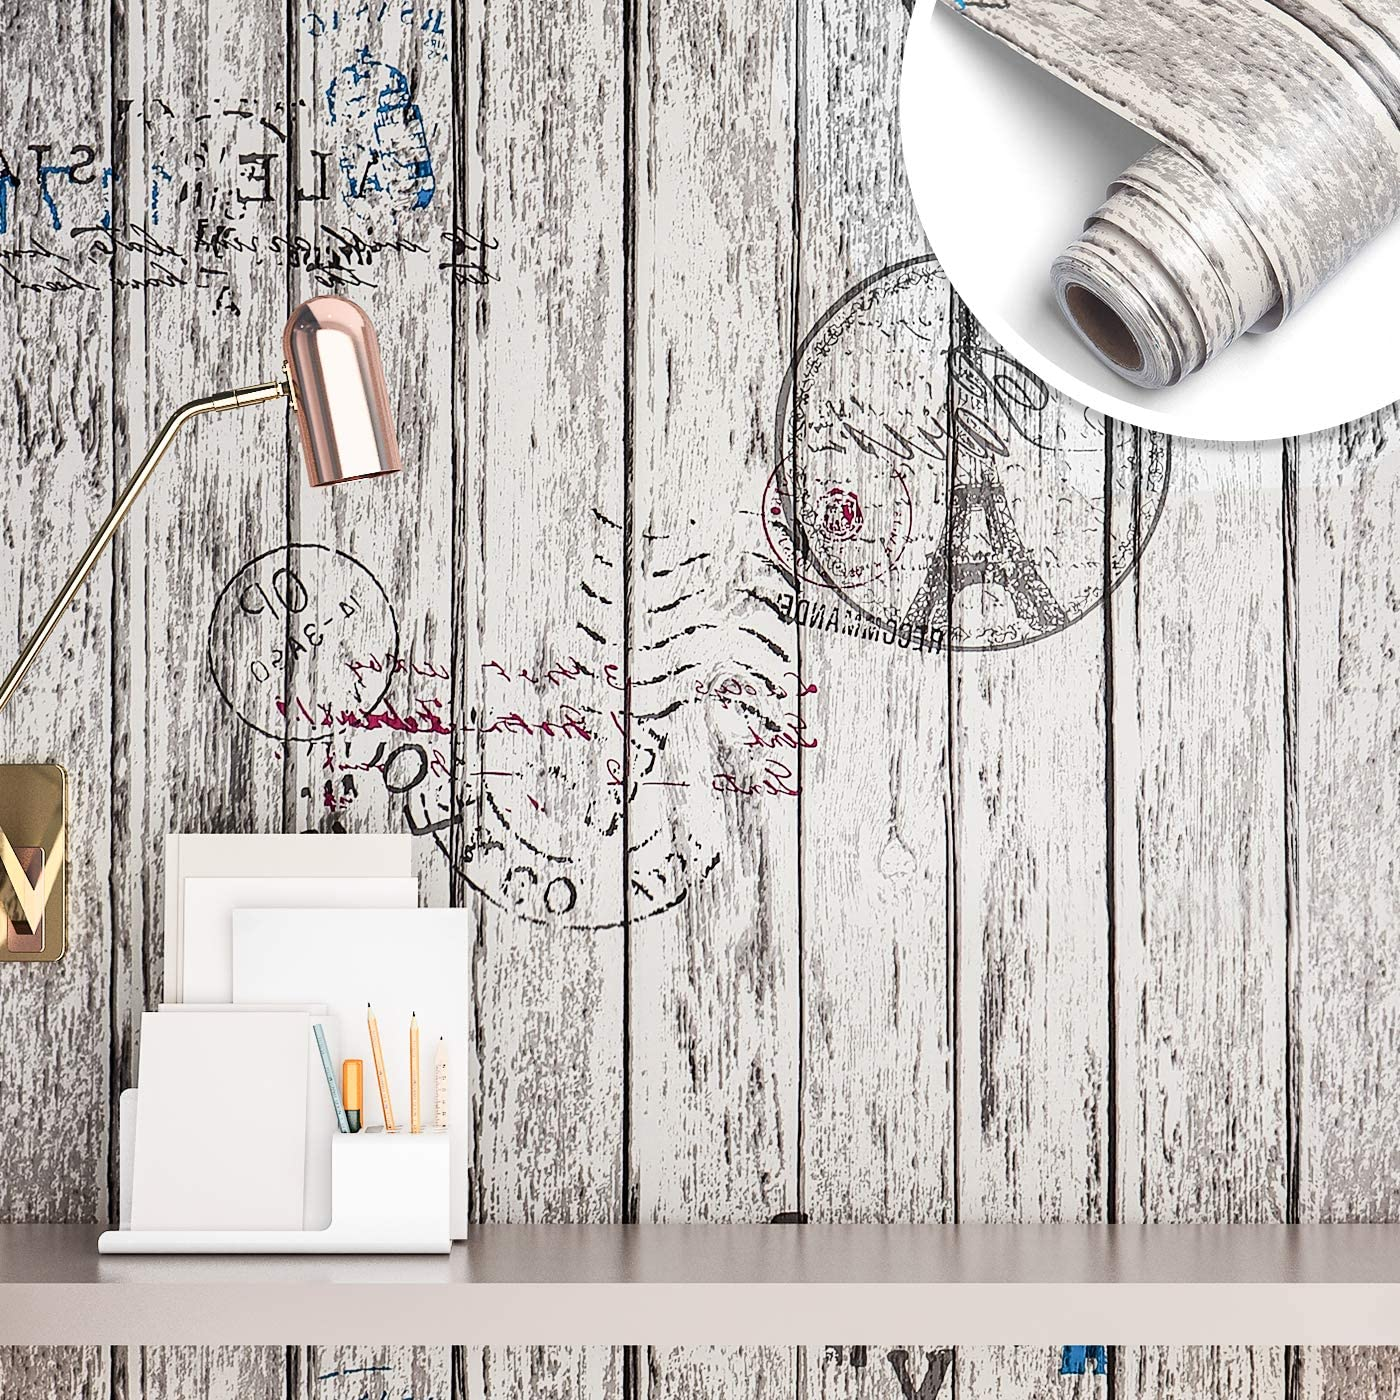 "Yenhome 24"" x 118"" Wood Grain Wallpaper Vinyl Wood Textured Wallpaper Self Adhesive Removable Distressed Wood Wall Coverings Peel and Stick Wallpaper for Shelf Liner Decorative Wood Plank Wall Paper"